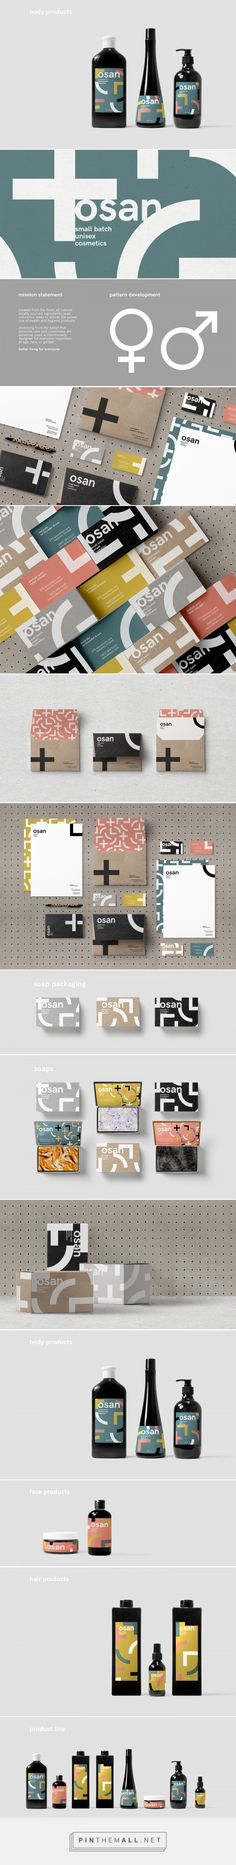 Osan Cosmetics         on          Packaging of the World - Creative Package Design Gallery - created via https://pinthemall.net